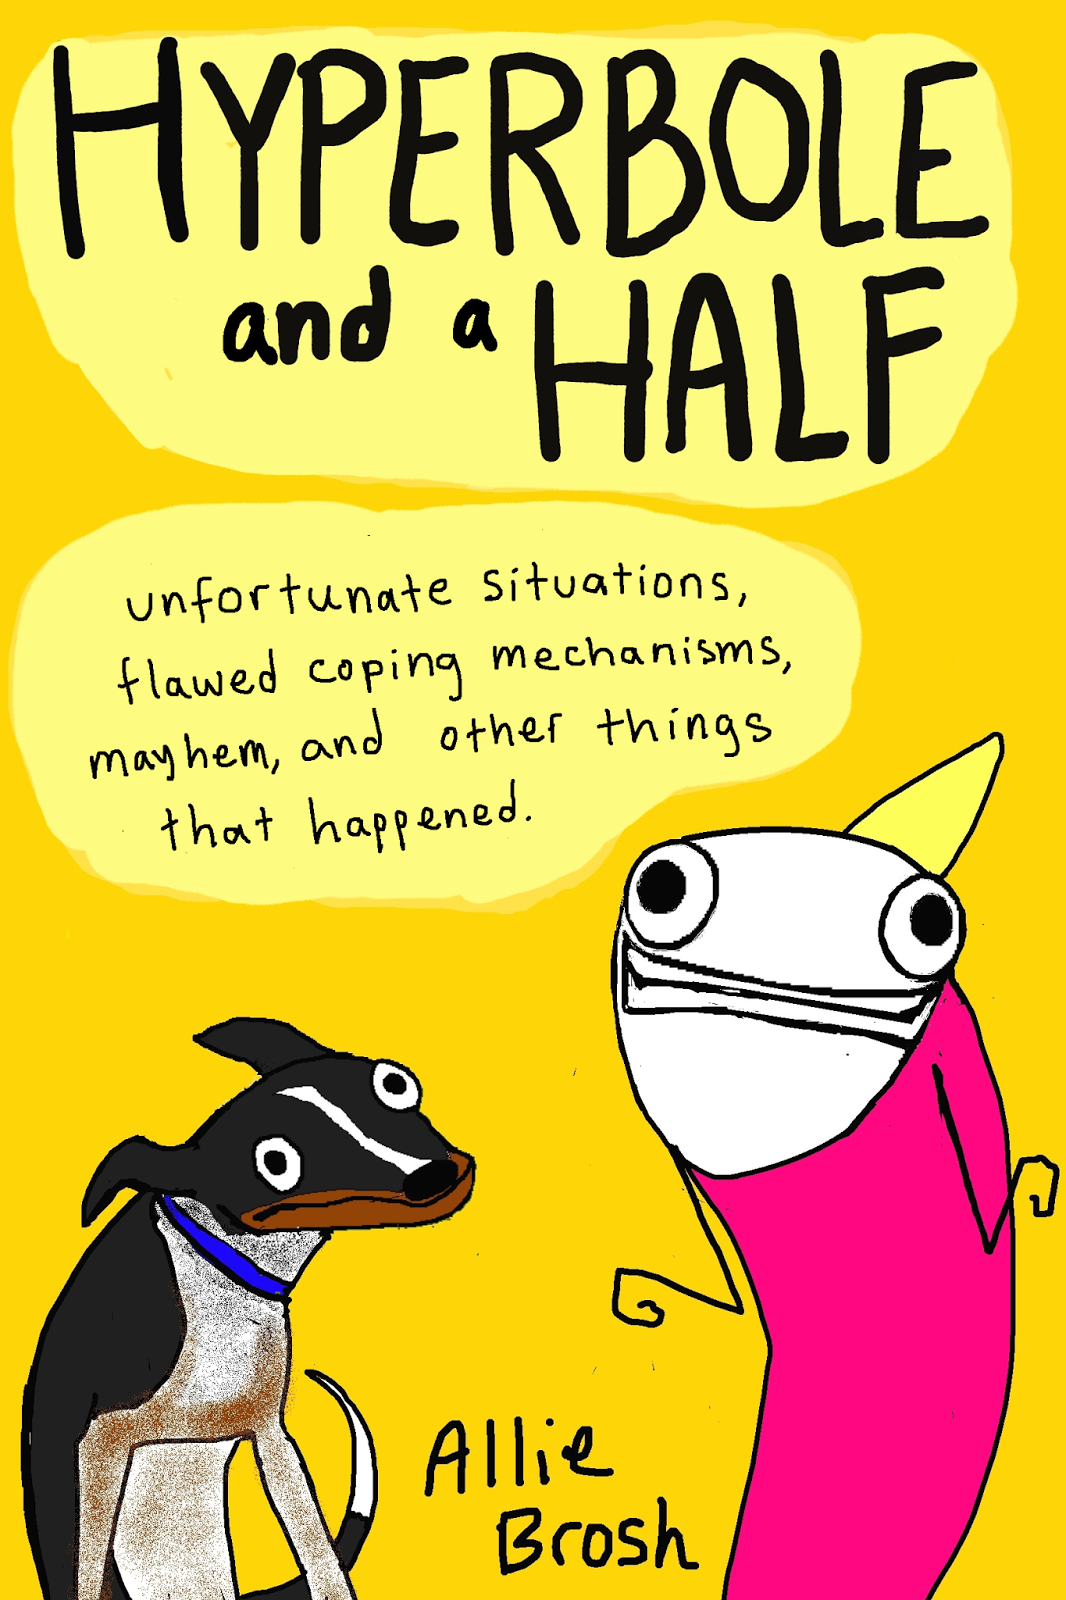 Hyperbole and a Half by Allie Brosh